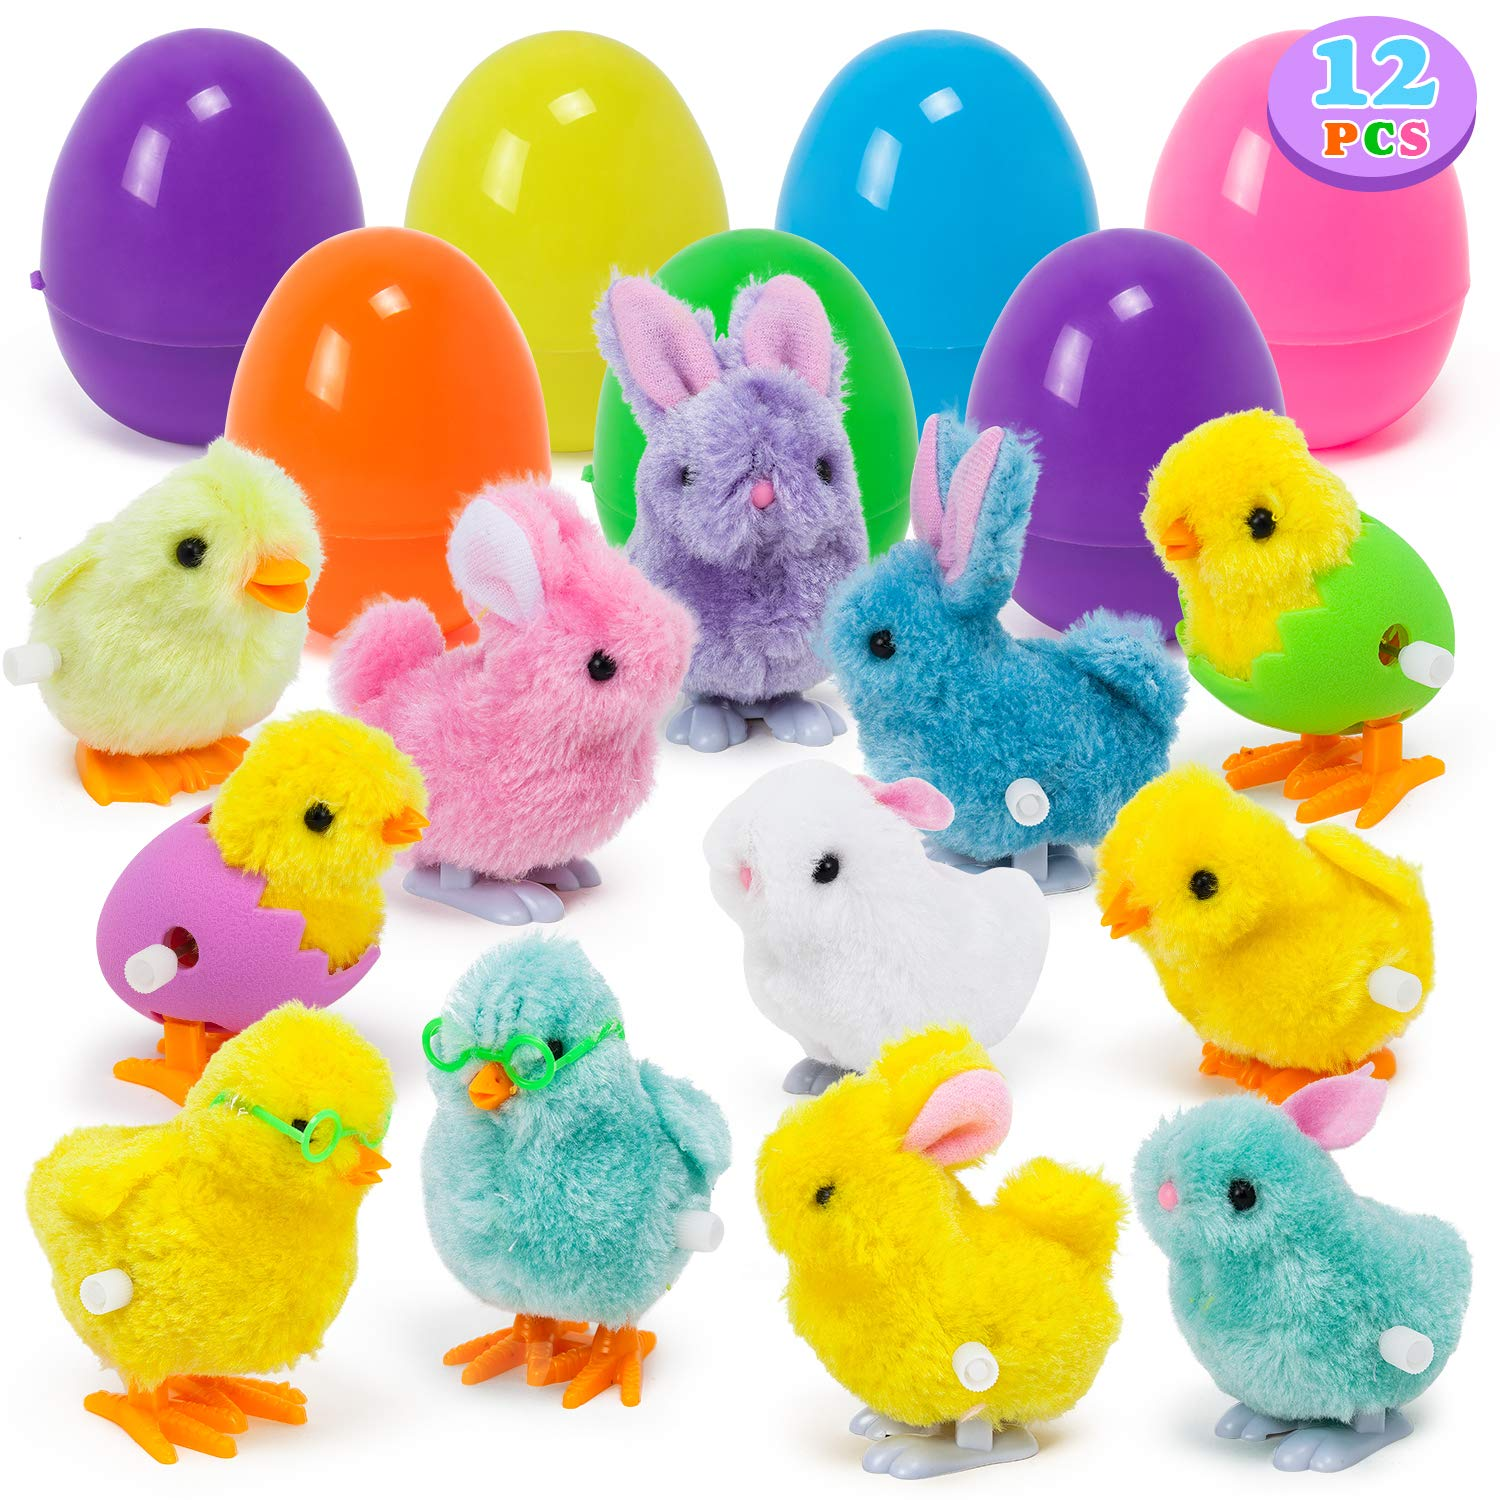 YIHONG 12 Pack Easter Eggs Filled with Wind-up Bunnies and Chicks,3.8inch Large Surprise Eggs Prefilled Toys for Easter Eggs Hunt, Easter Basket Stuffers, Easter Party Favors